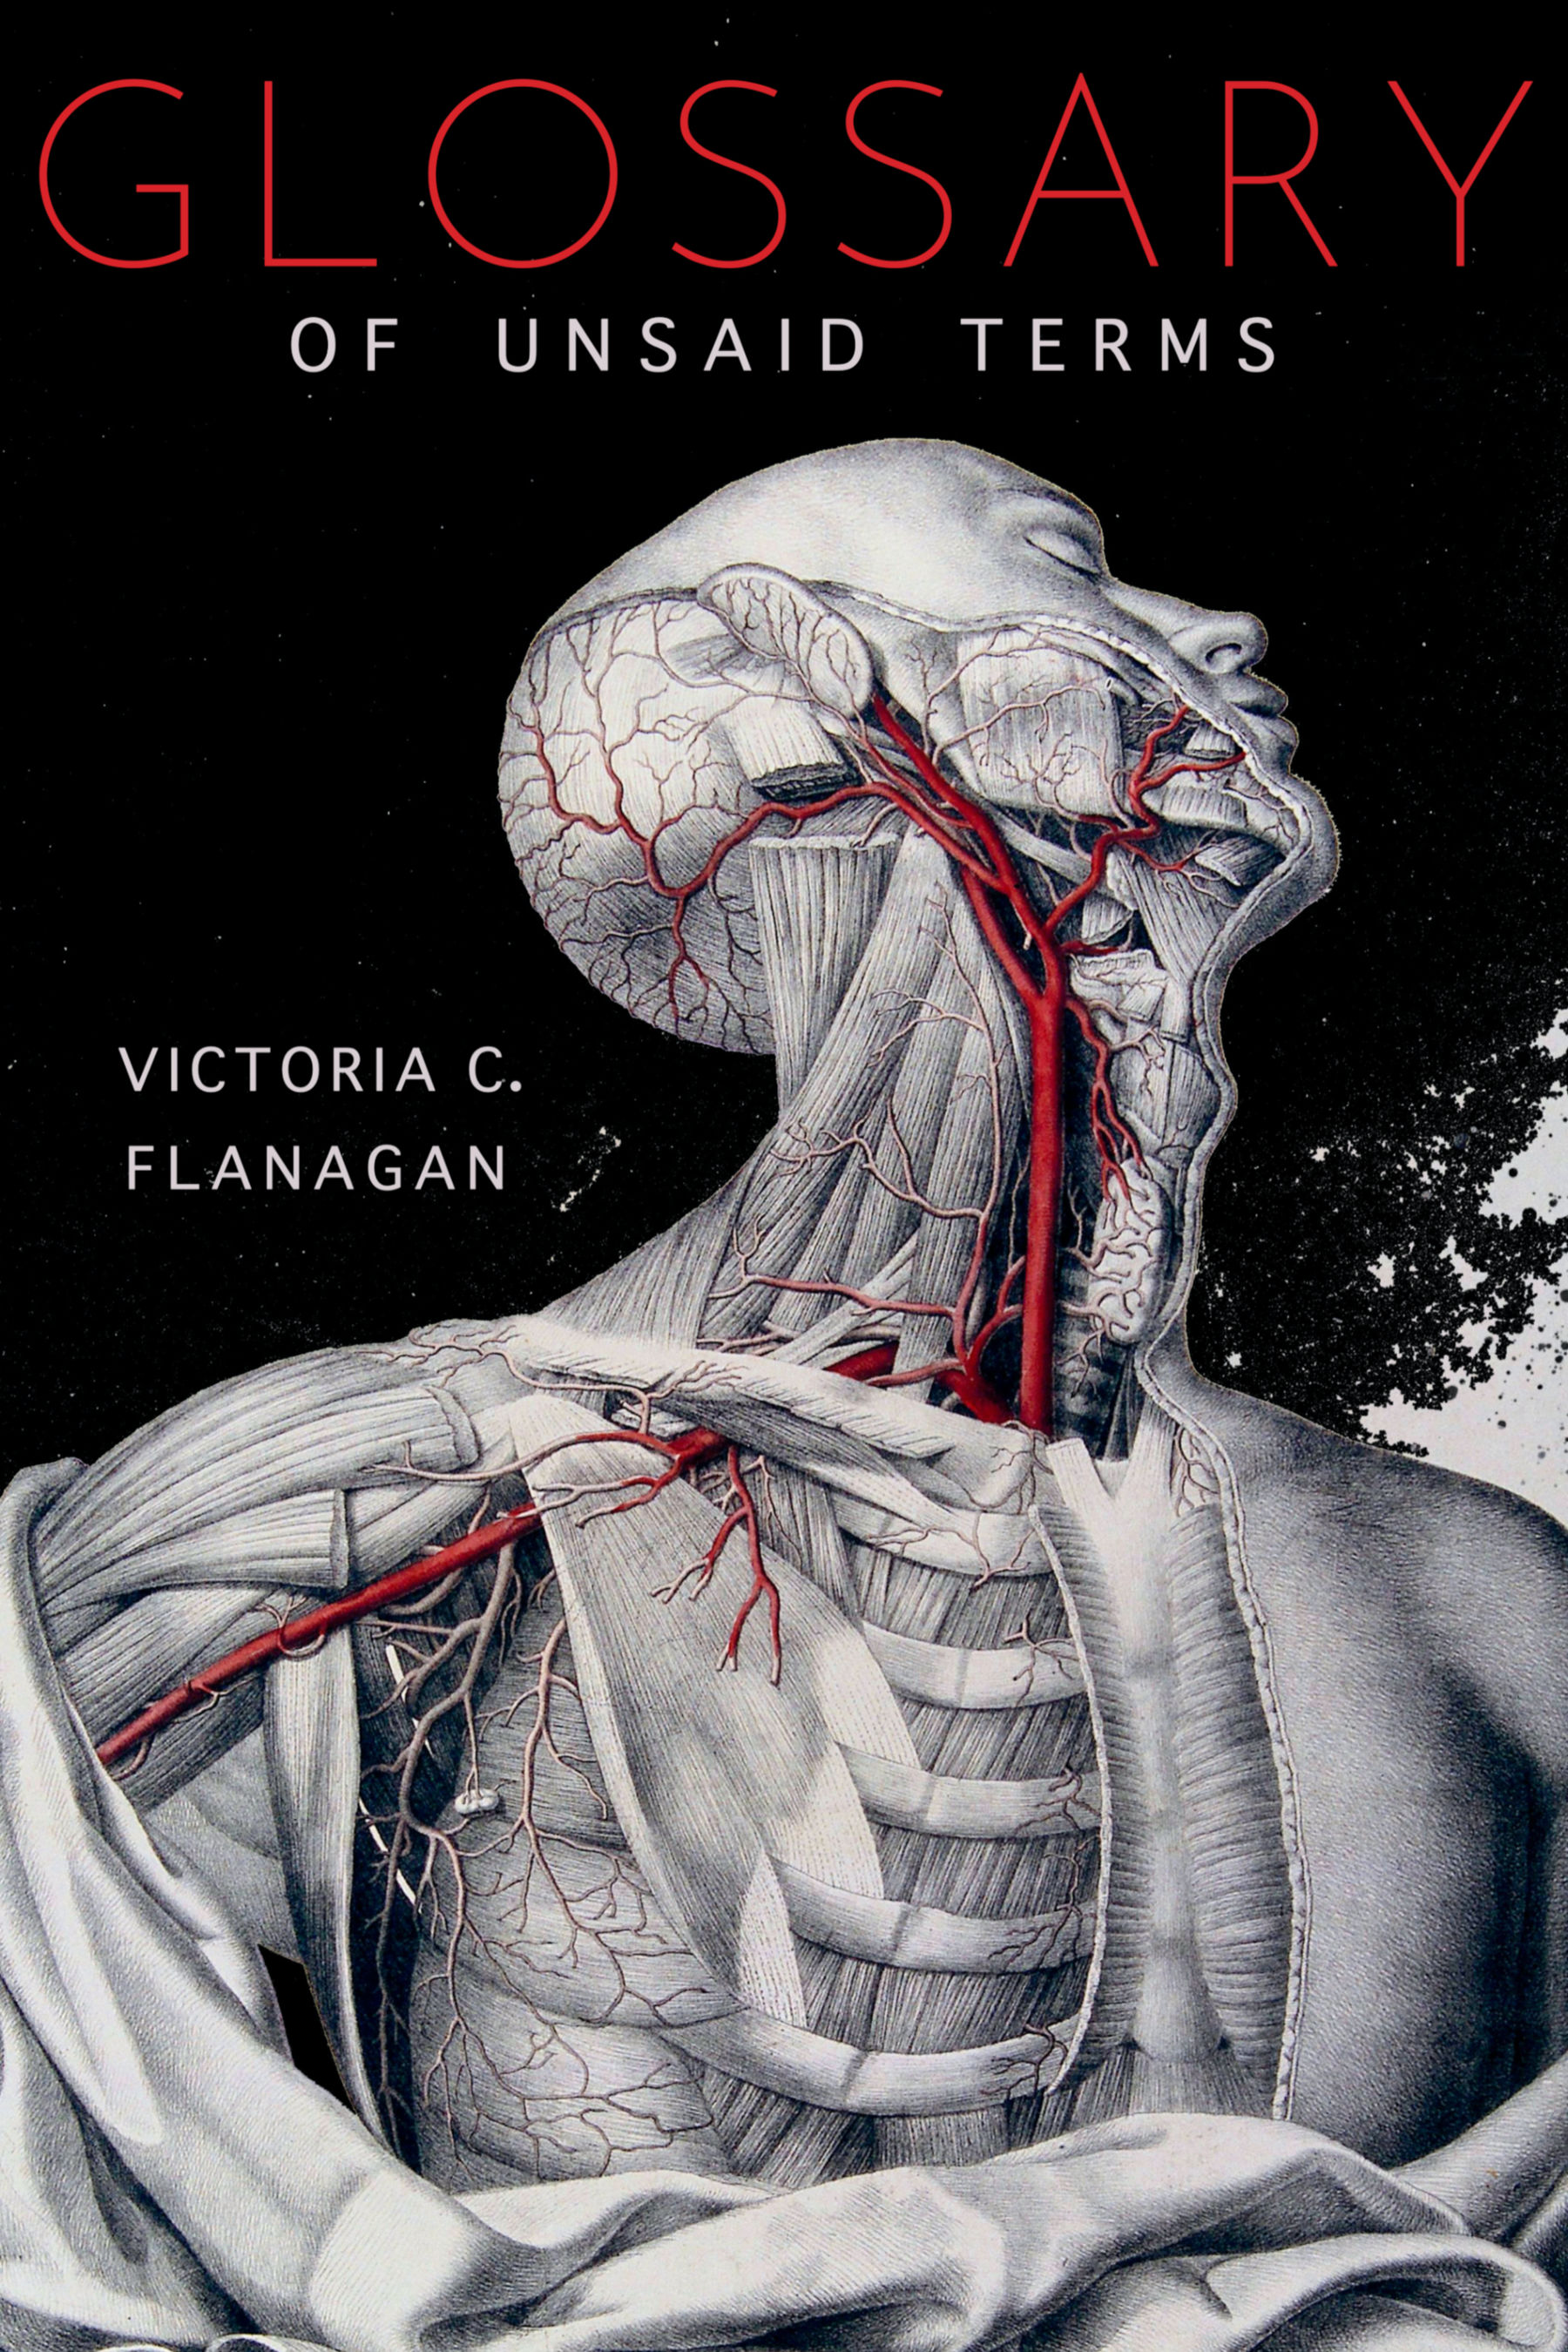 Cover of Glossary of Unsaid Terms, a chapbook by Victoria C. Flanagan. The cover art, created by J. Roux in 1822, is a colored lithograph of the head, neck, shoulder, and chest of a dissected male écorché, with arteries and blood vessels indicated in red.